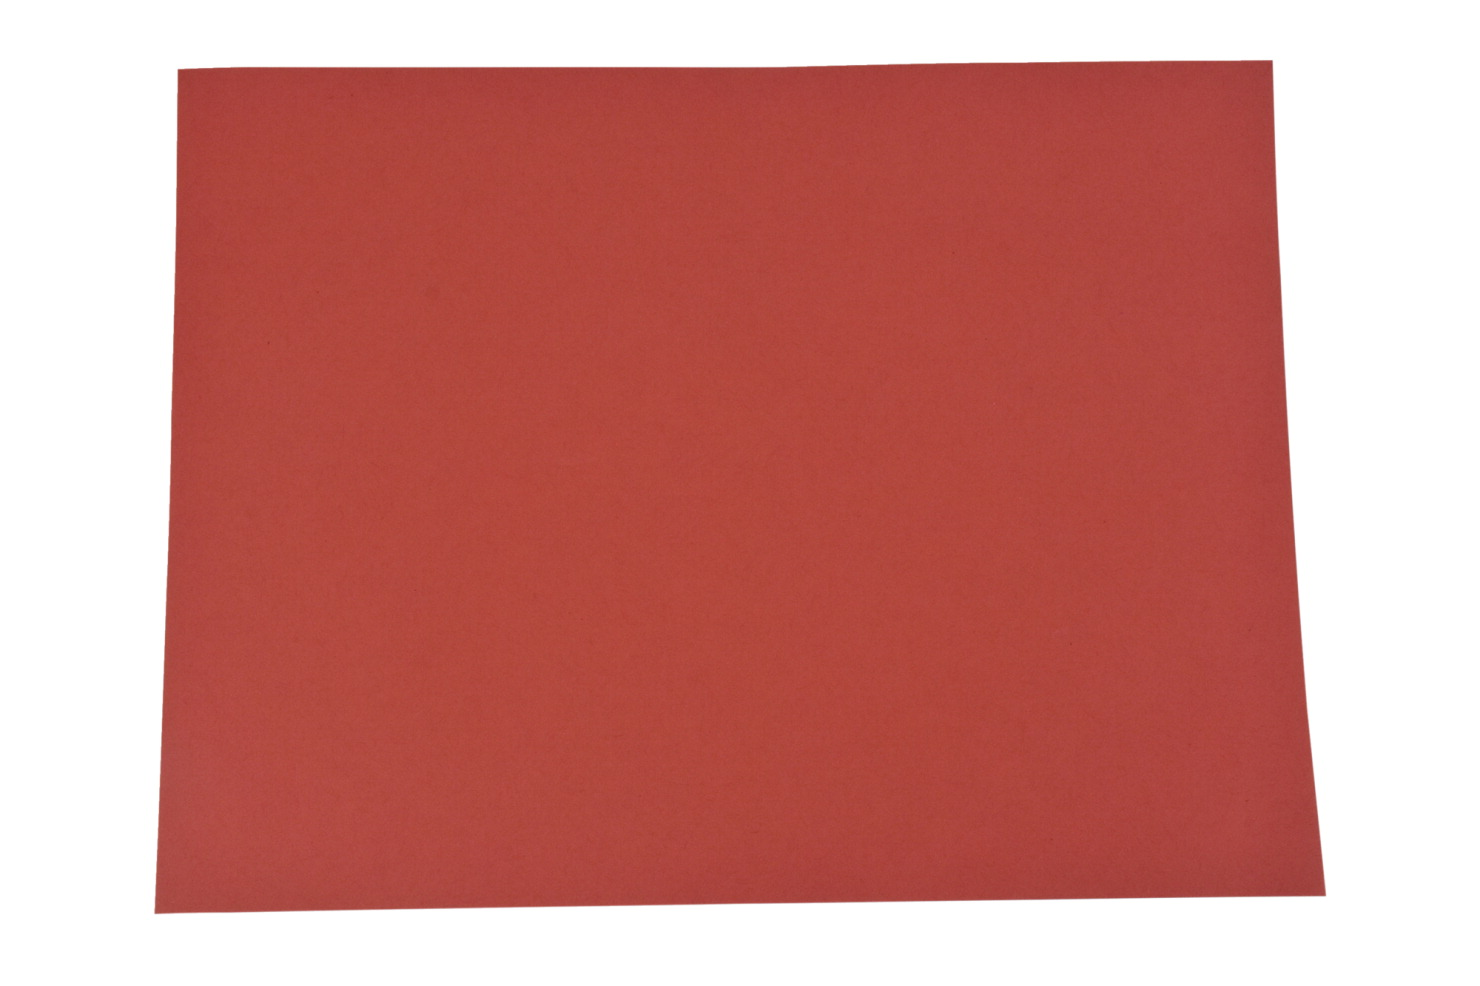 Sax Colored Art Paper, 9 x 12 Inches, Red, 50 Sheets